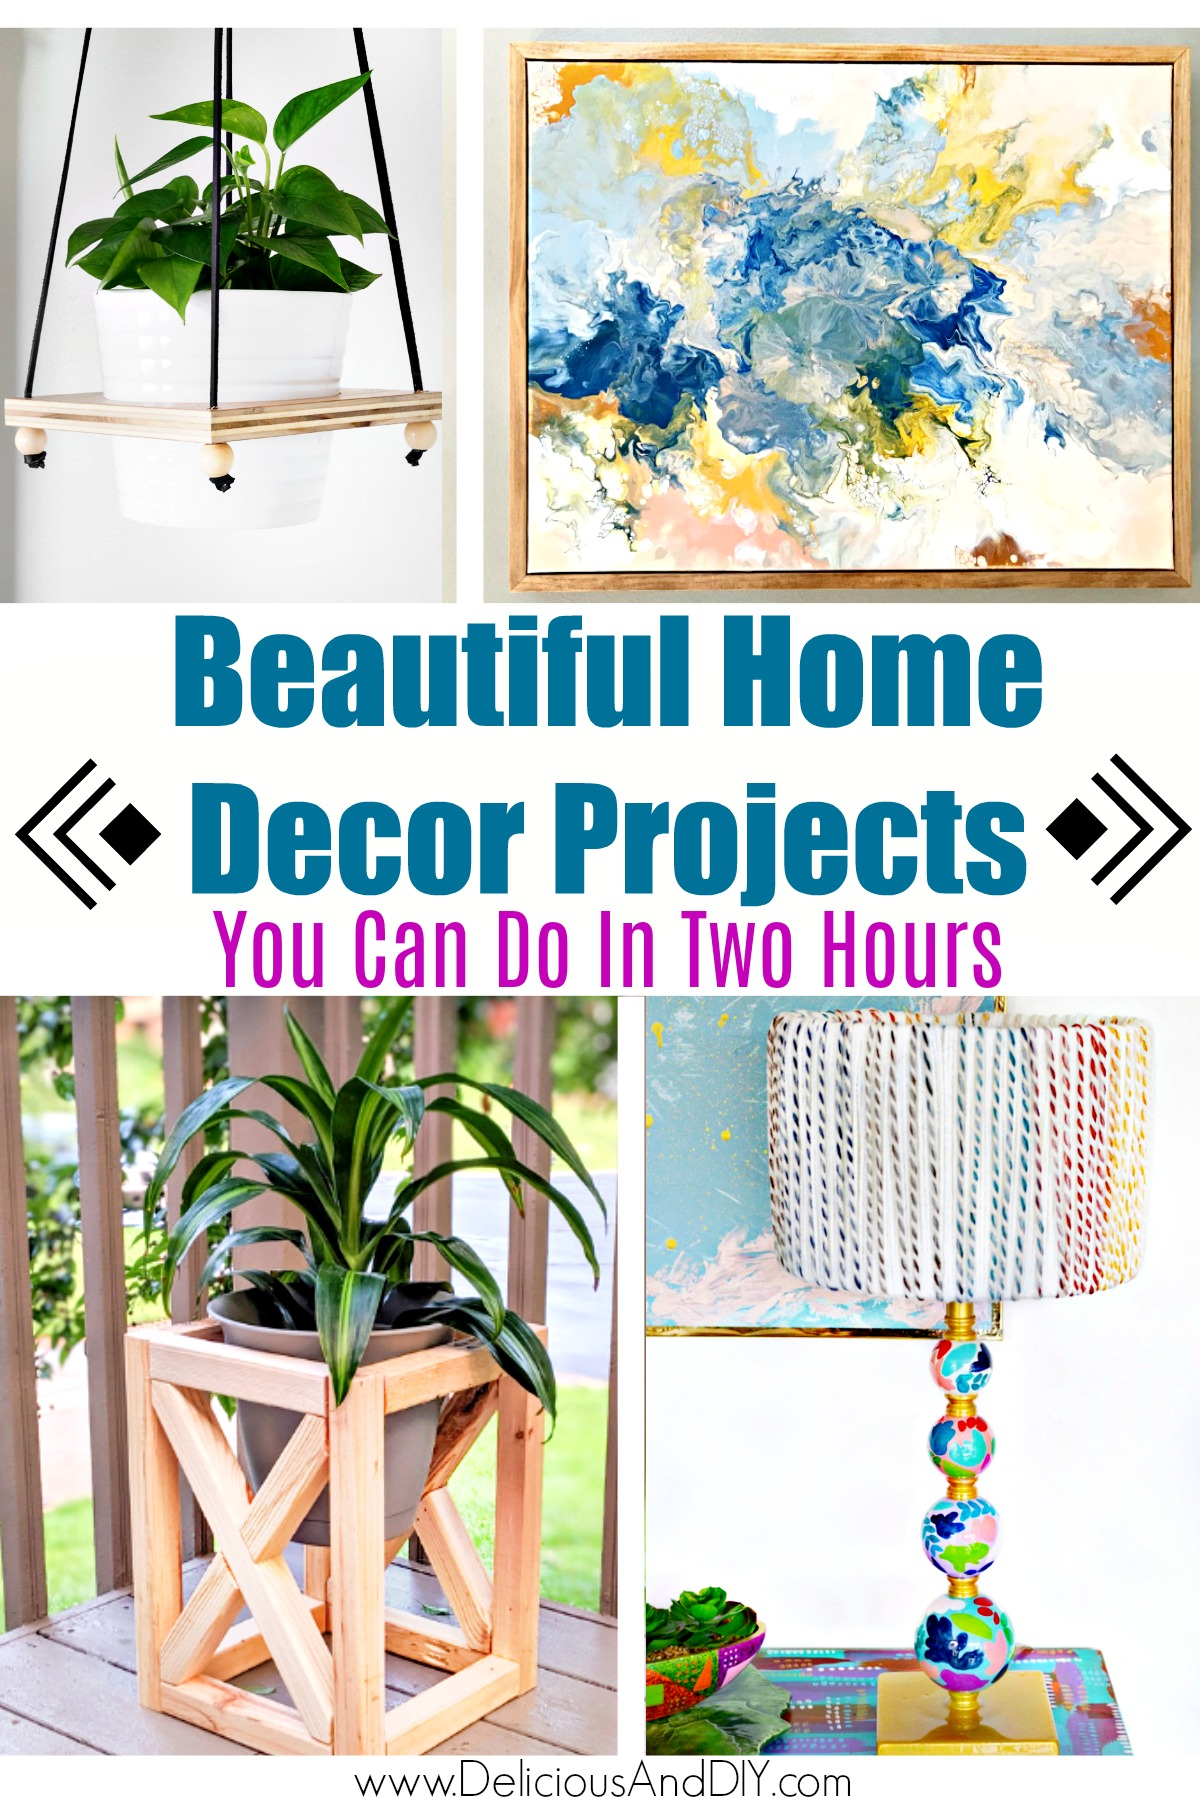 Home Decorating Ideas on a Budget - Delicious And DIY